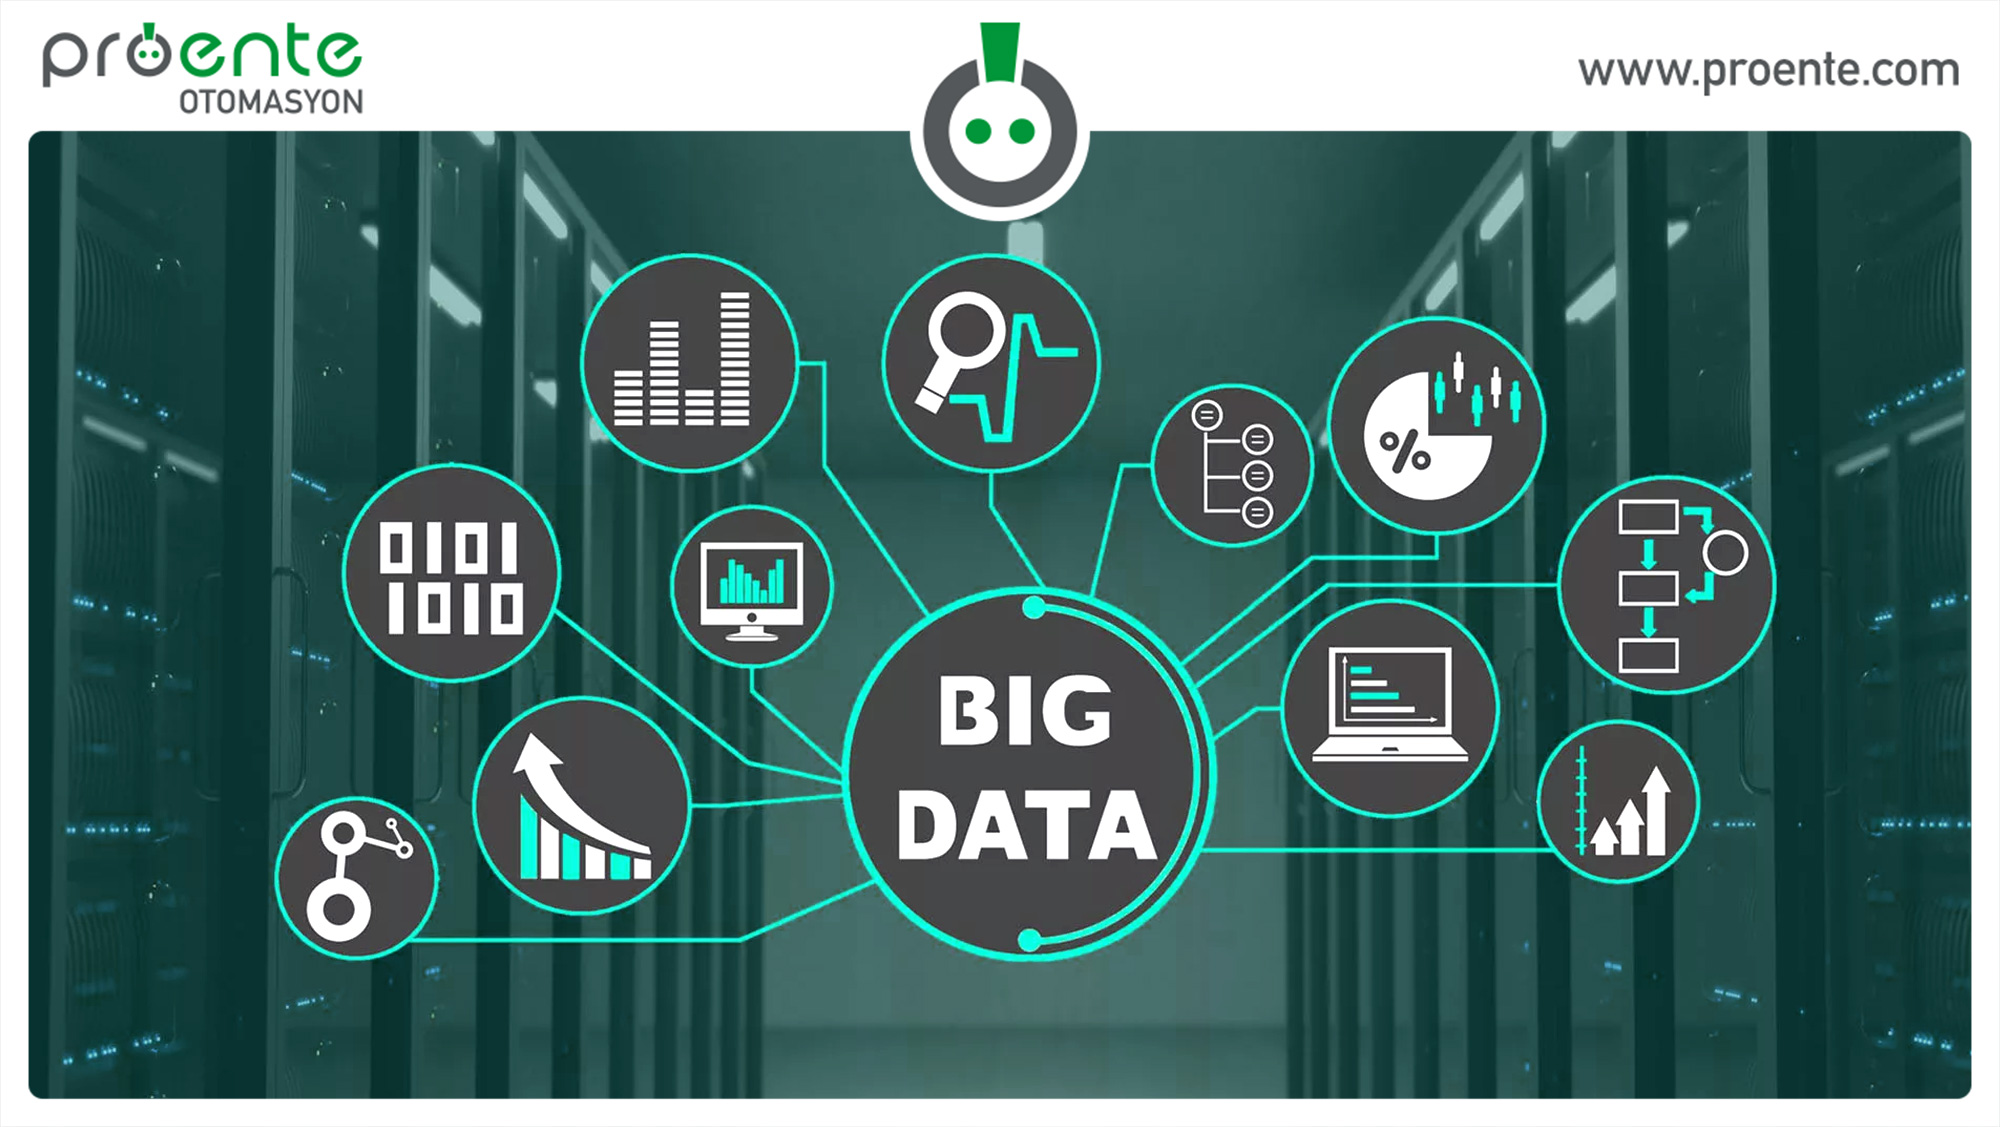 big data, big data kullanım, big data kullanımı,